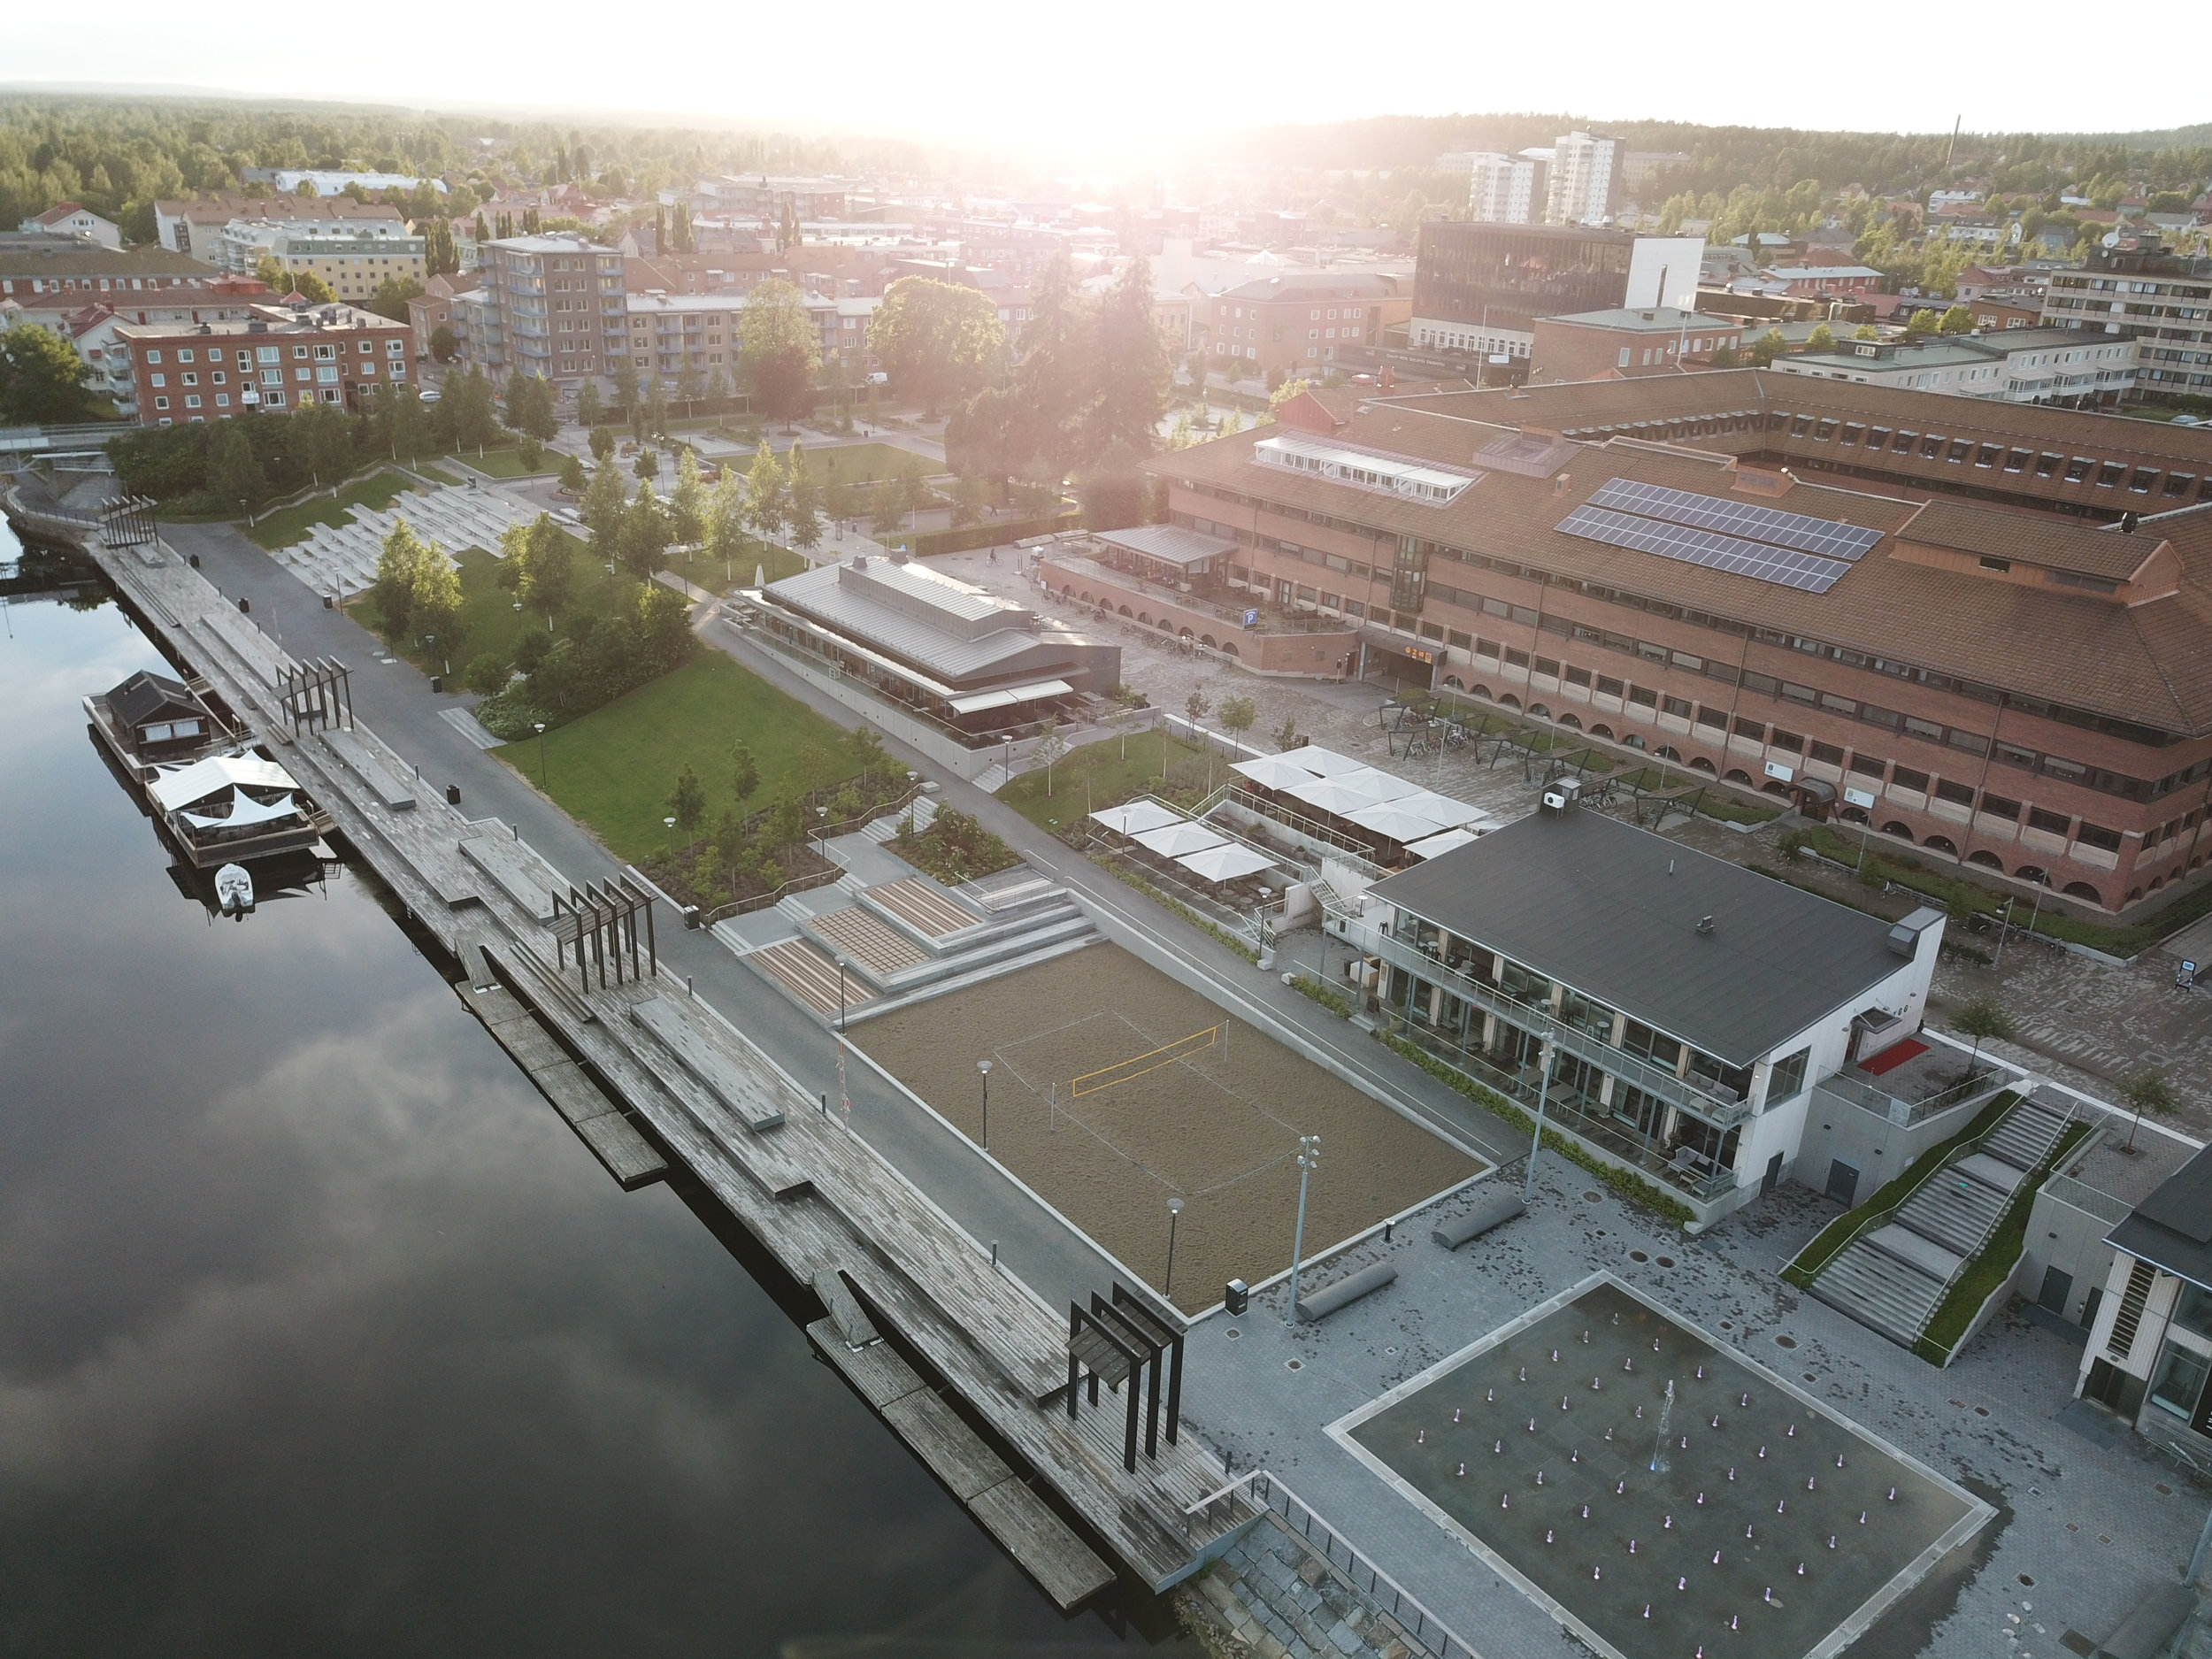 Drone photography. Real estate project - Norway